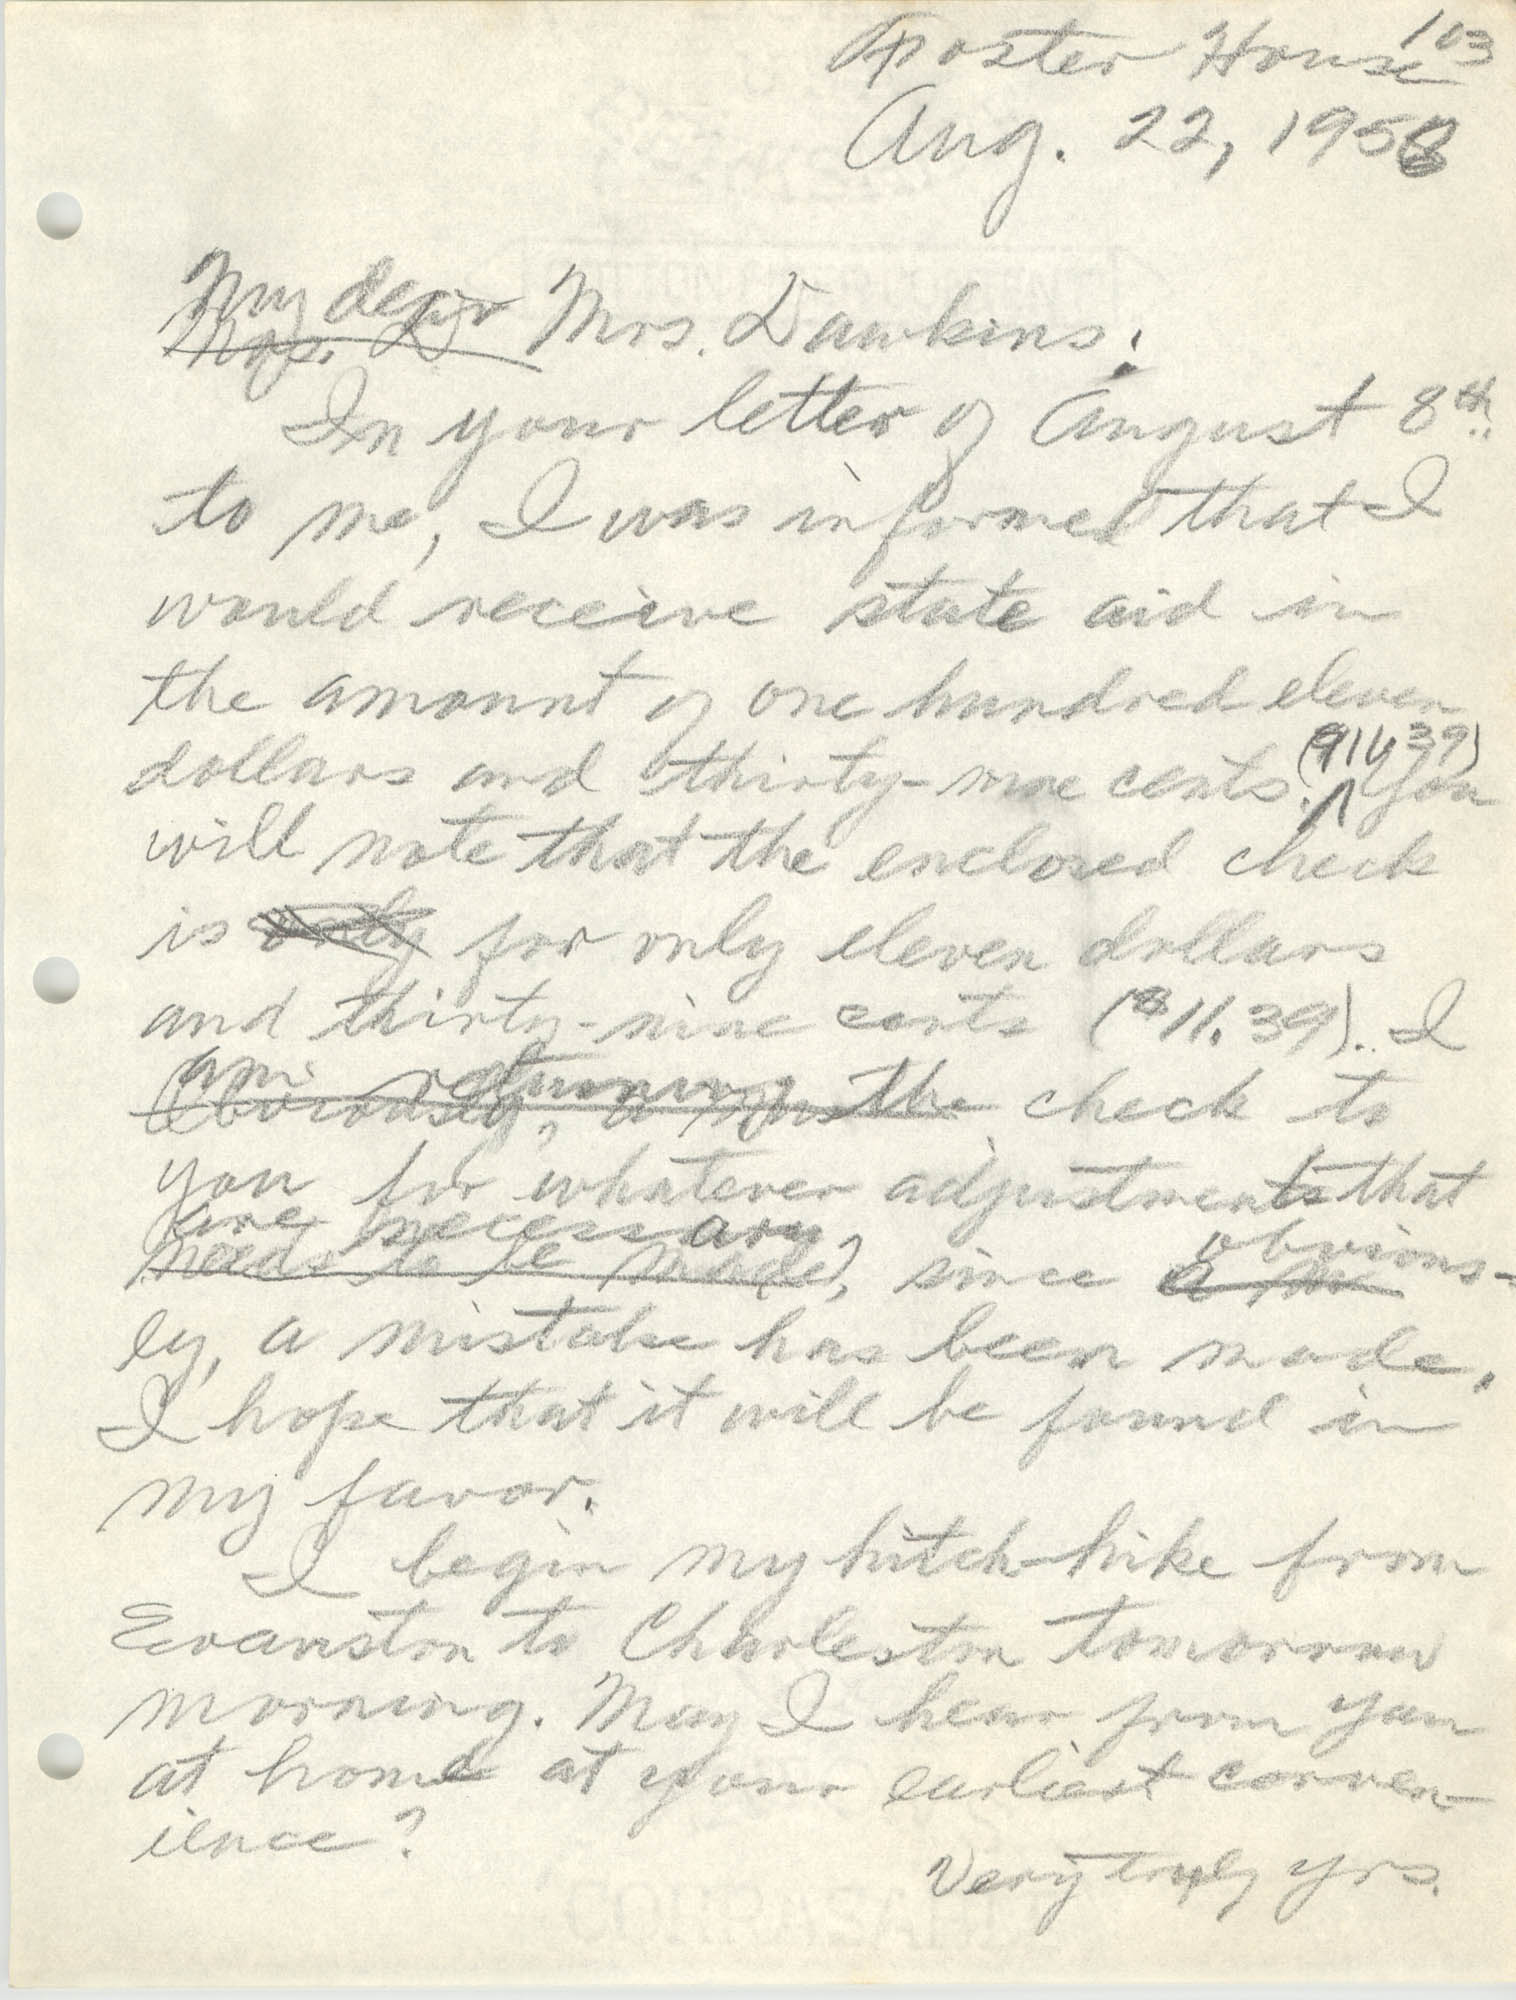 Letter from Eugene C. Hunt to Emma S. Dawkins, August 22, 1958